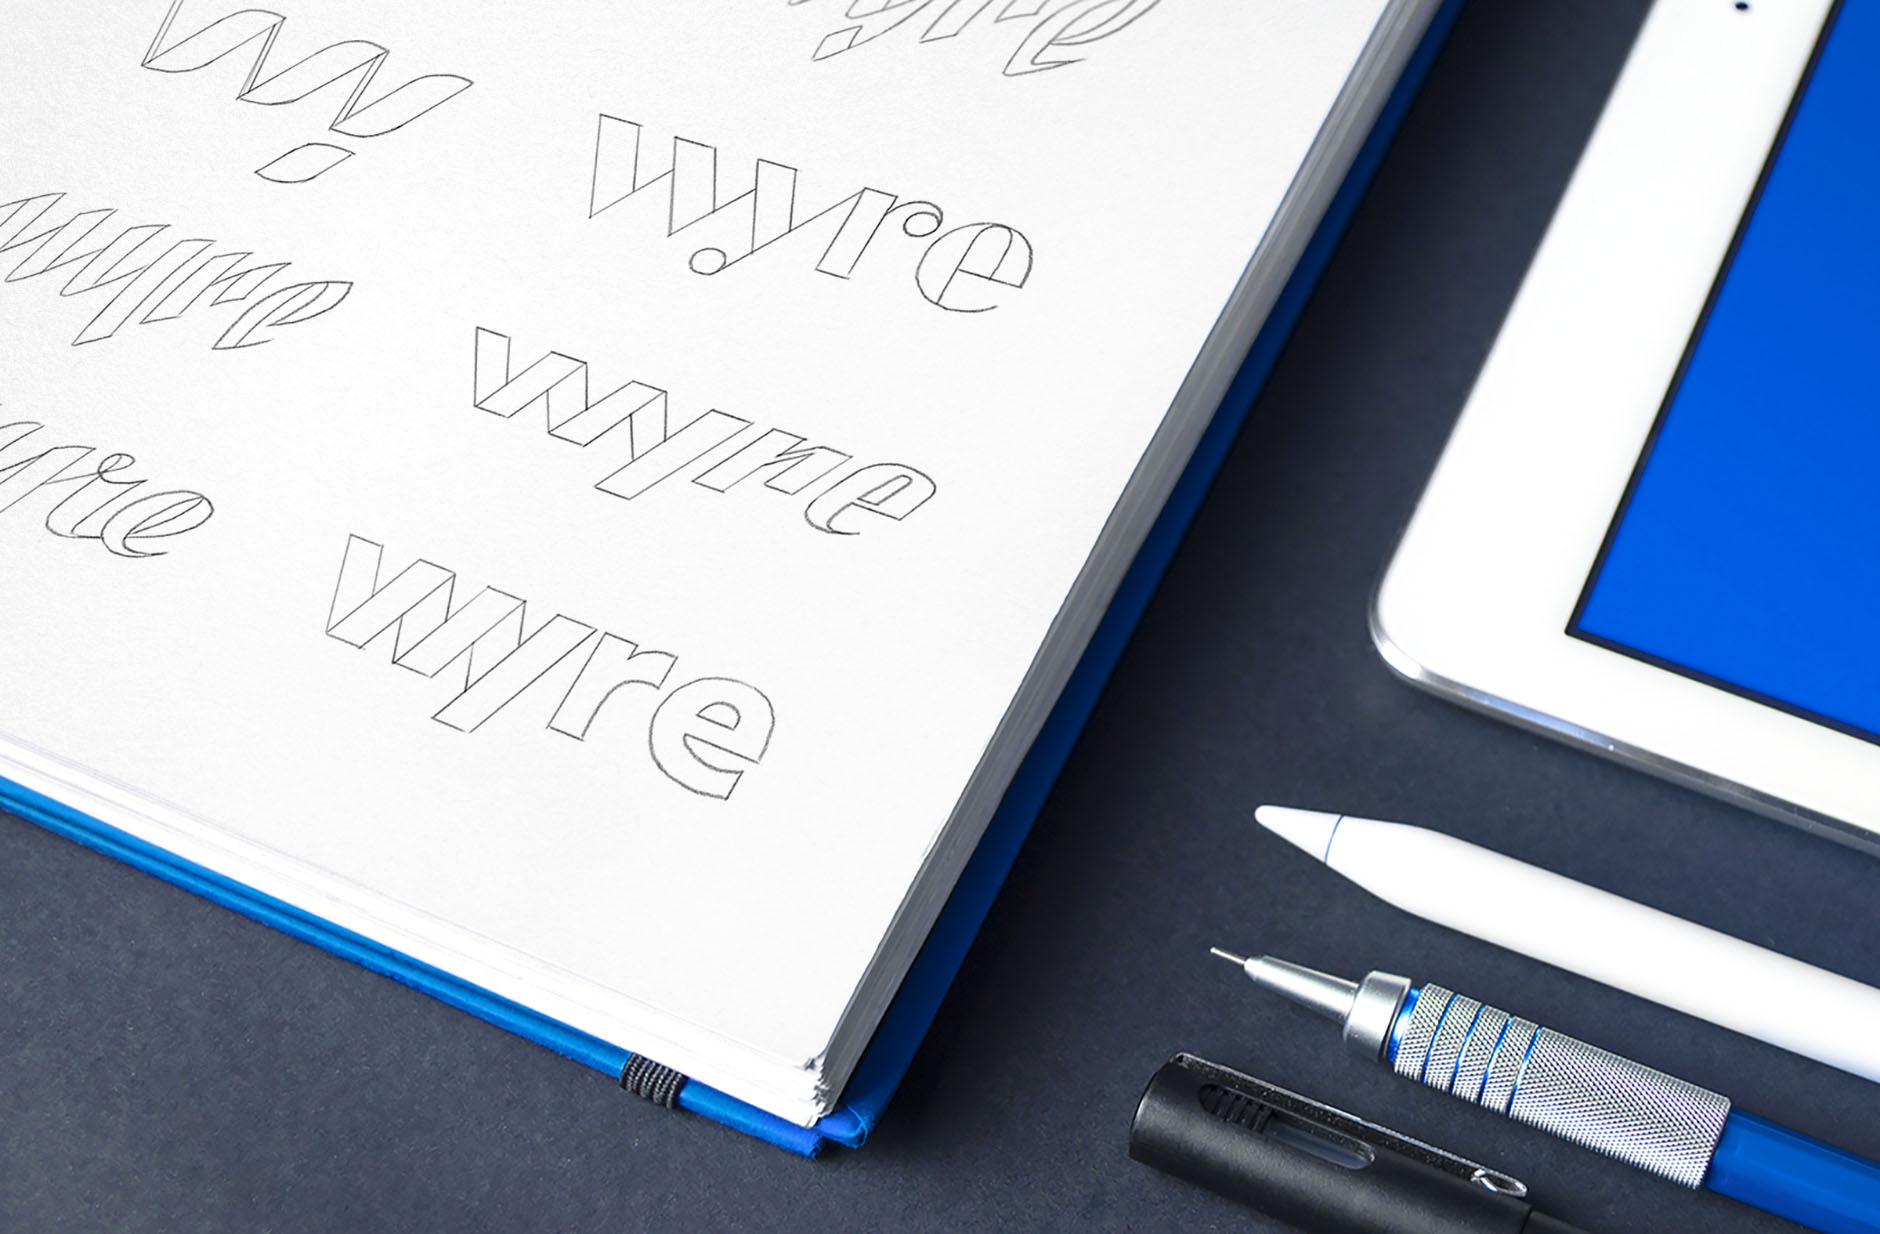 Wyre logo sketches